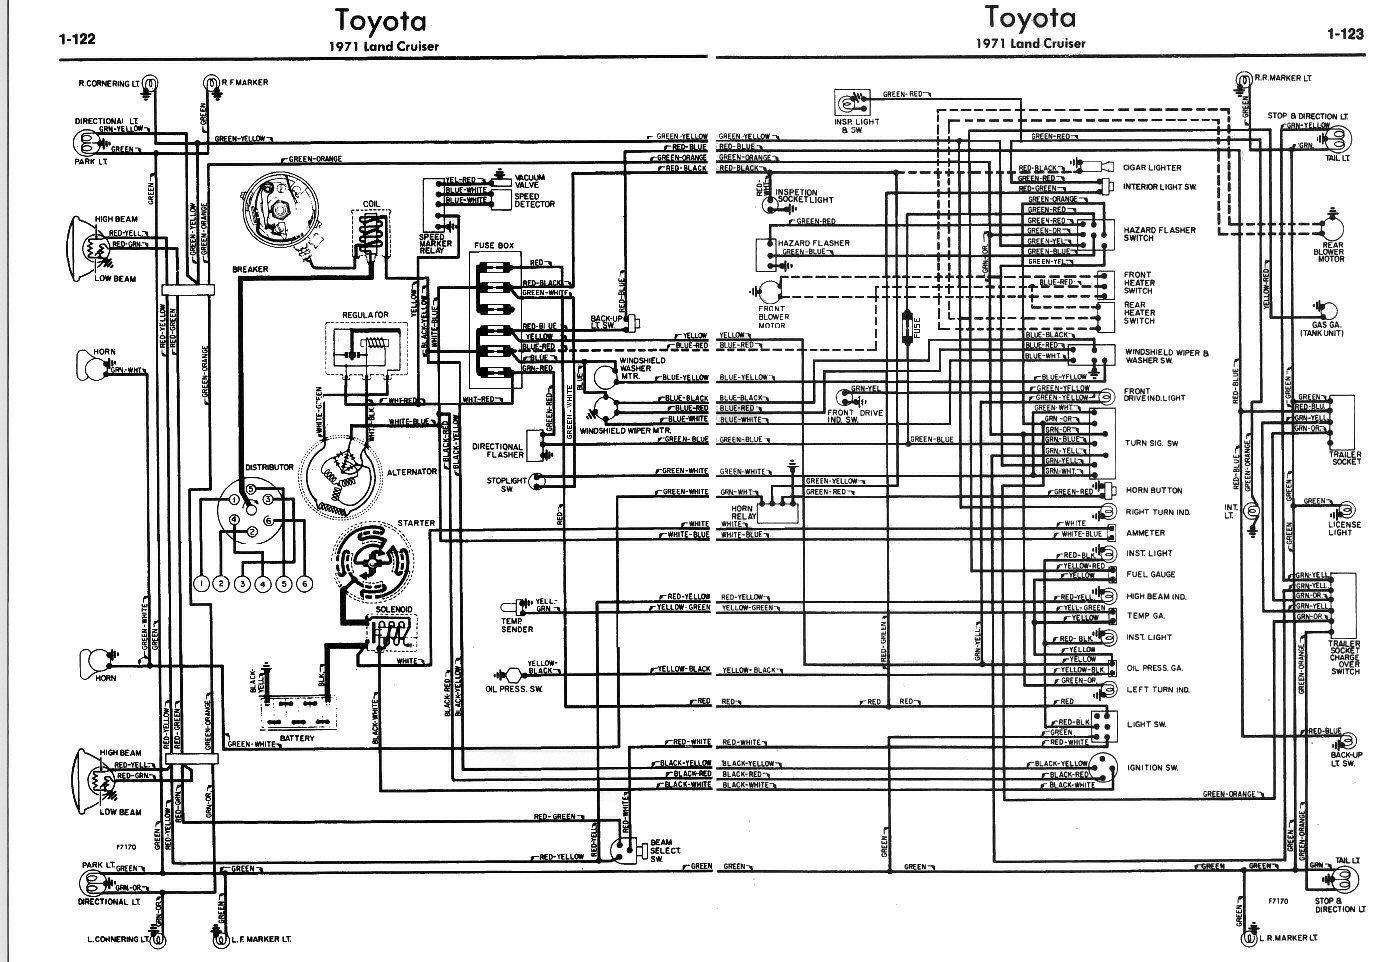 1971 fj40 wiring diagram fj40 dash diagram \u2022 wiring diagrams j squared co 1969 Volvo 142 at honlapkeszites.co